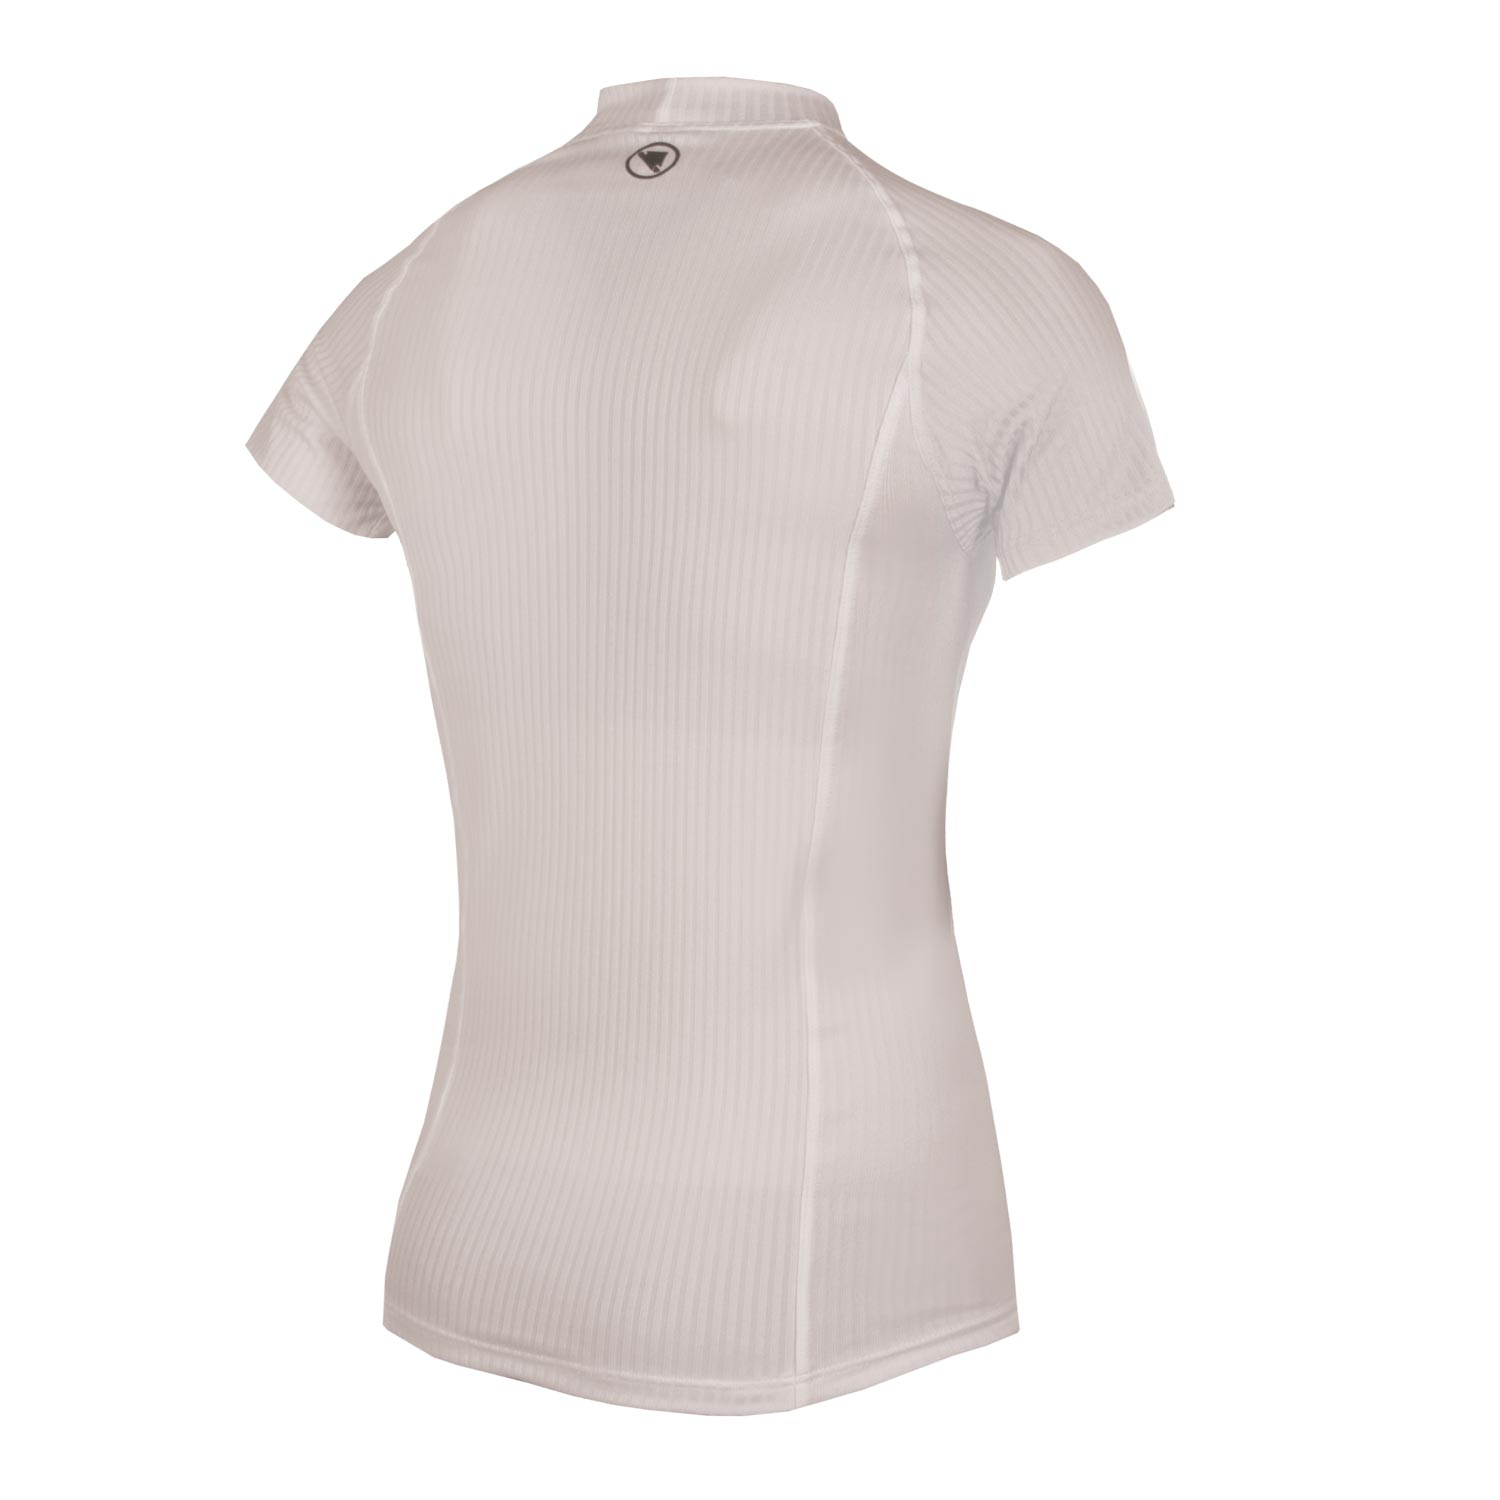 Wms Transrib S/S Baselayer White